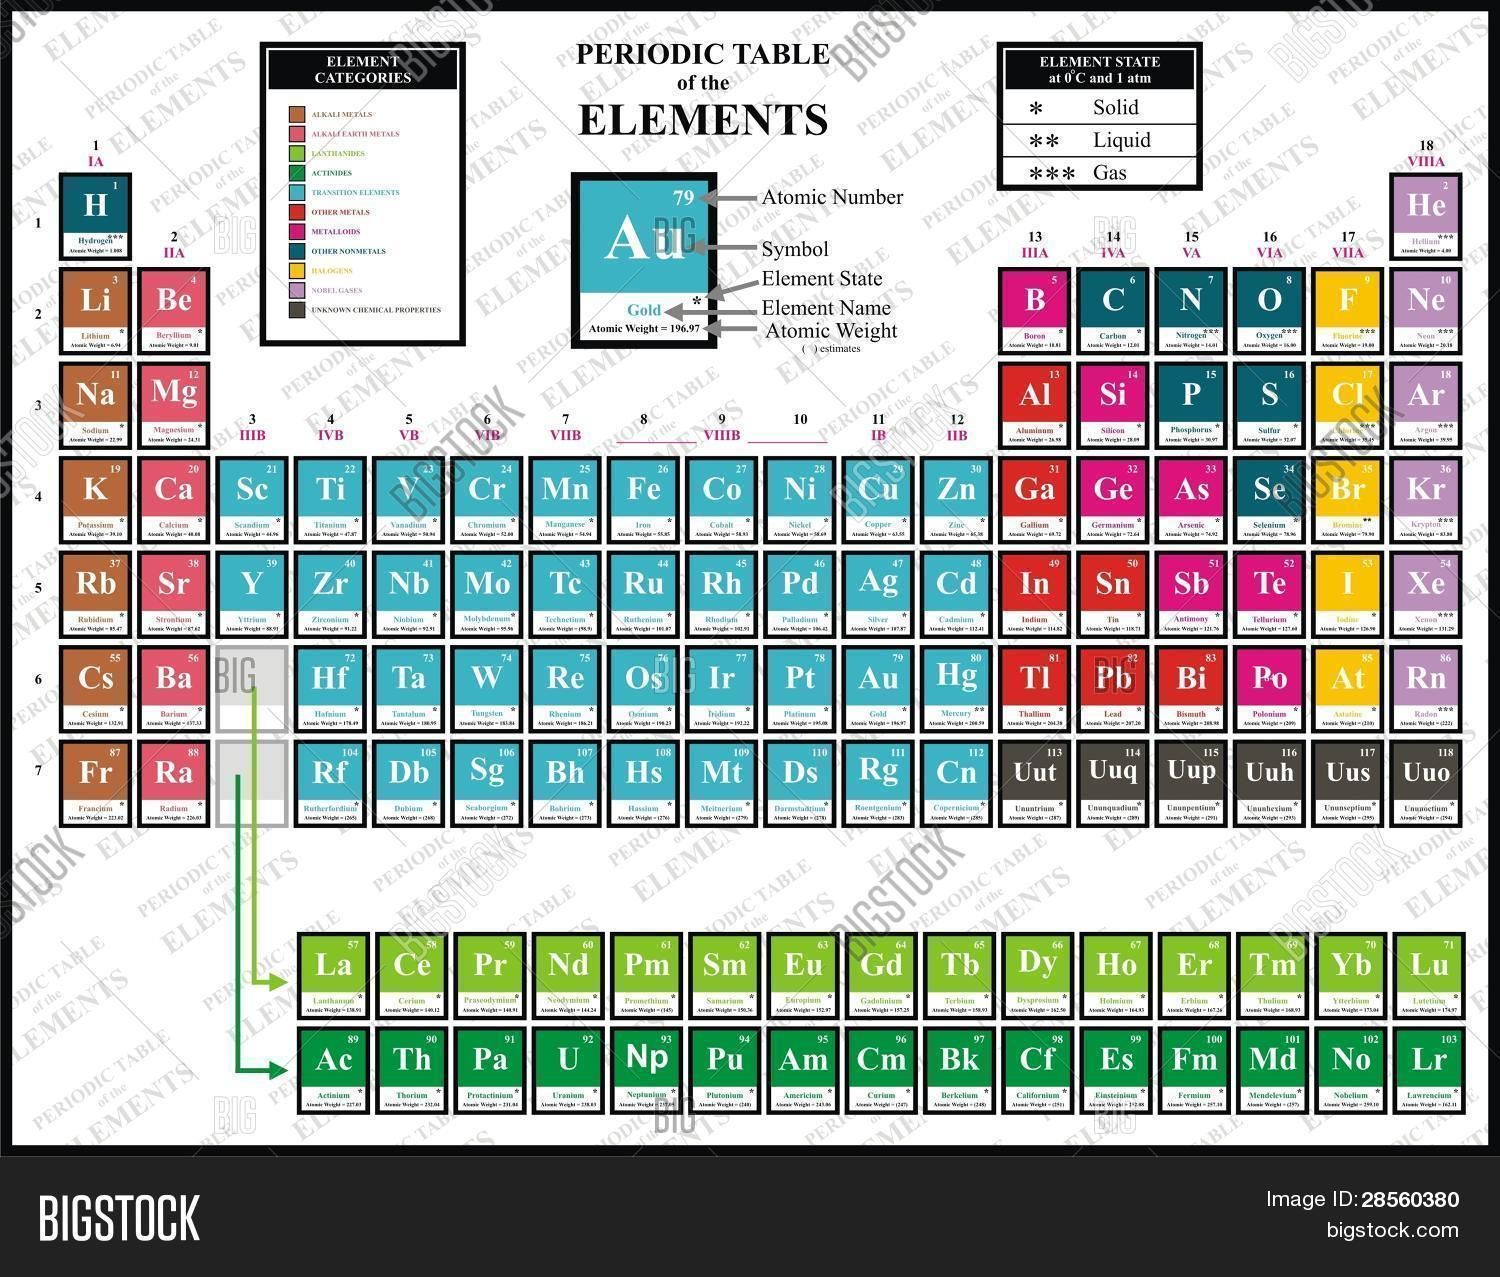 Colorful periodic image photo free trial bigstock colorful periodic table of the chemical elements including element name atomic number atomic urtaz Gallery